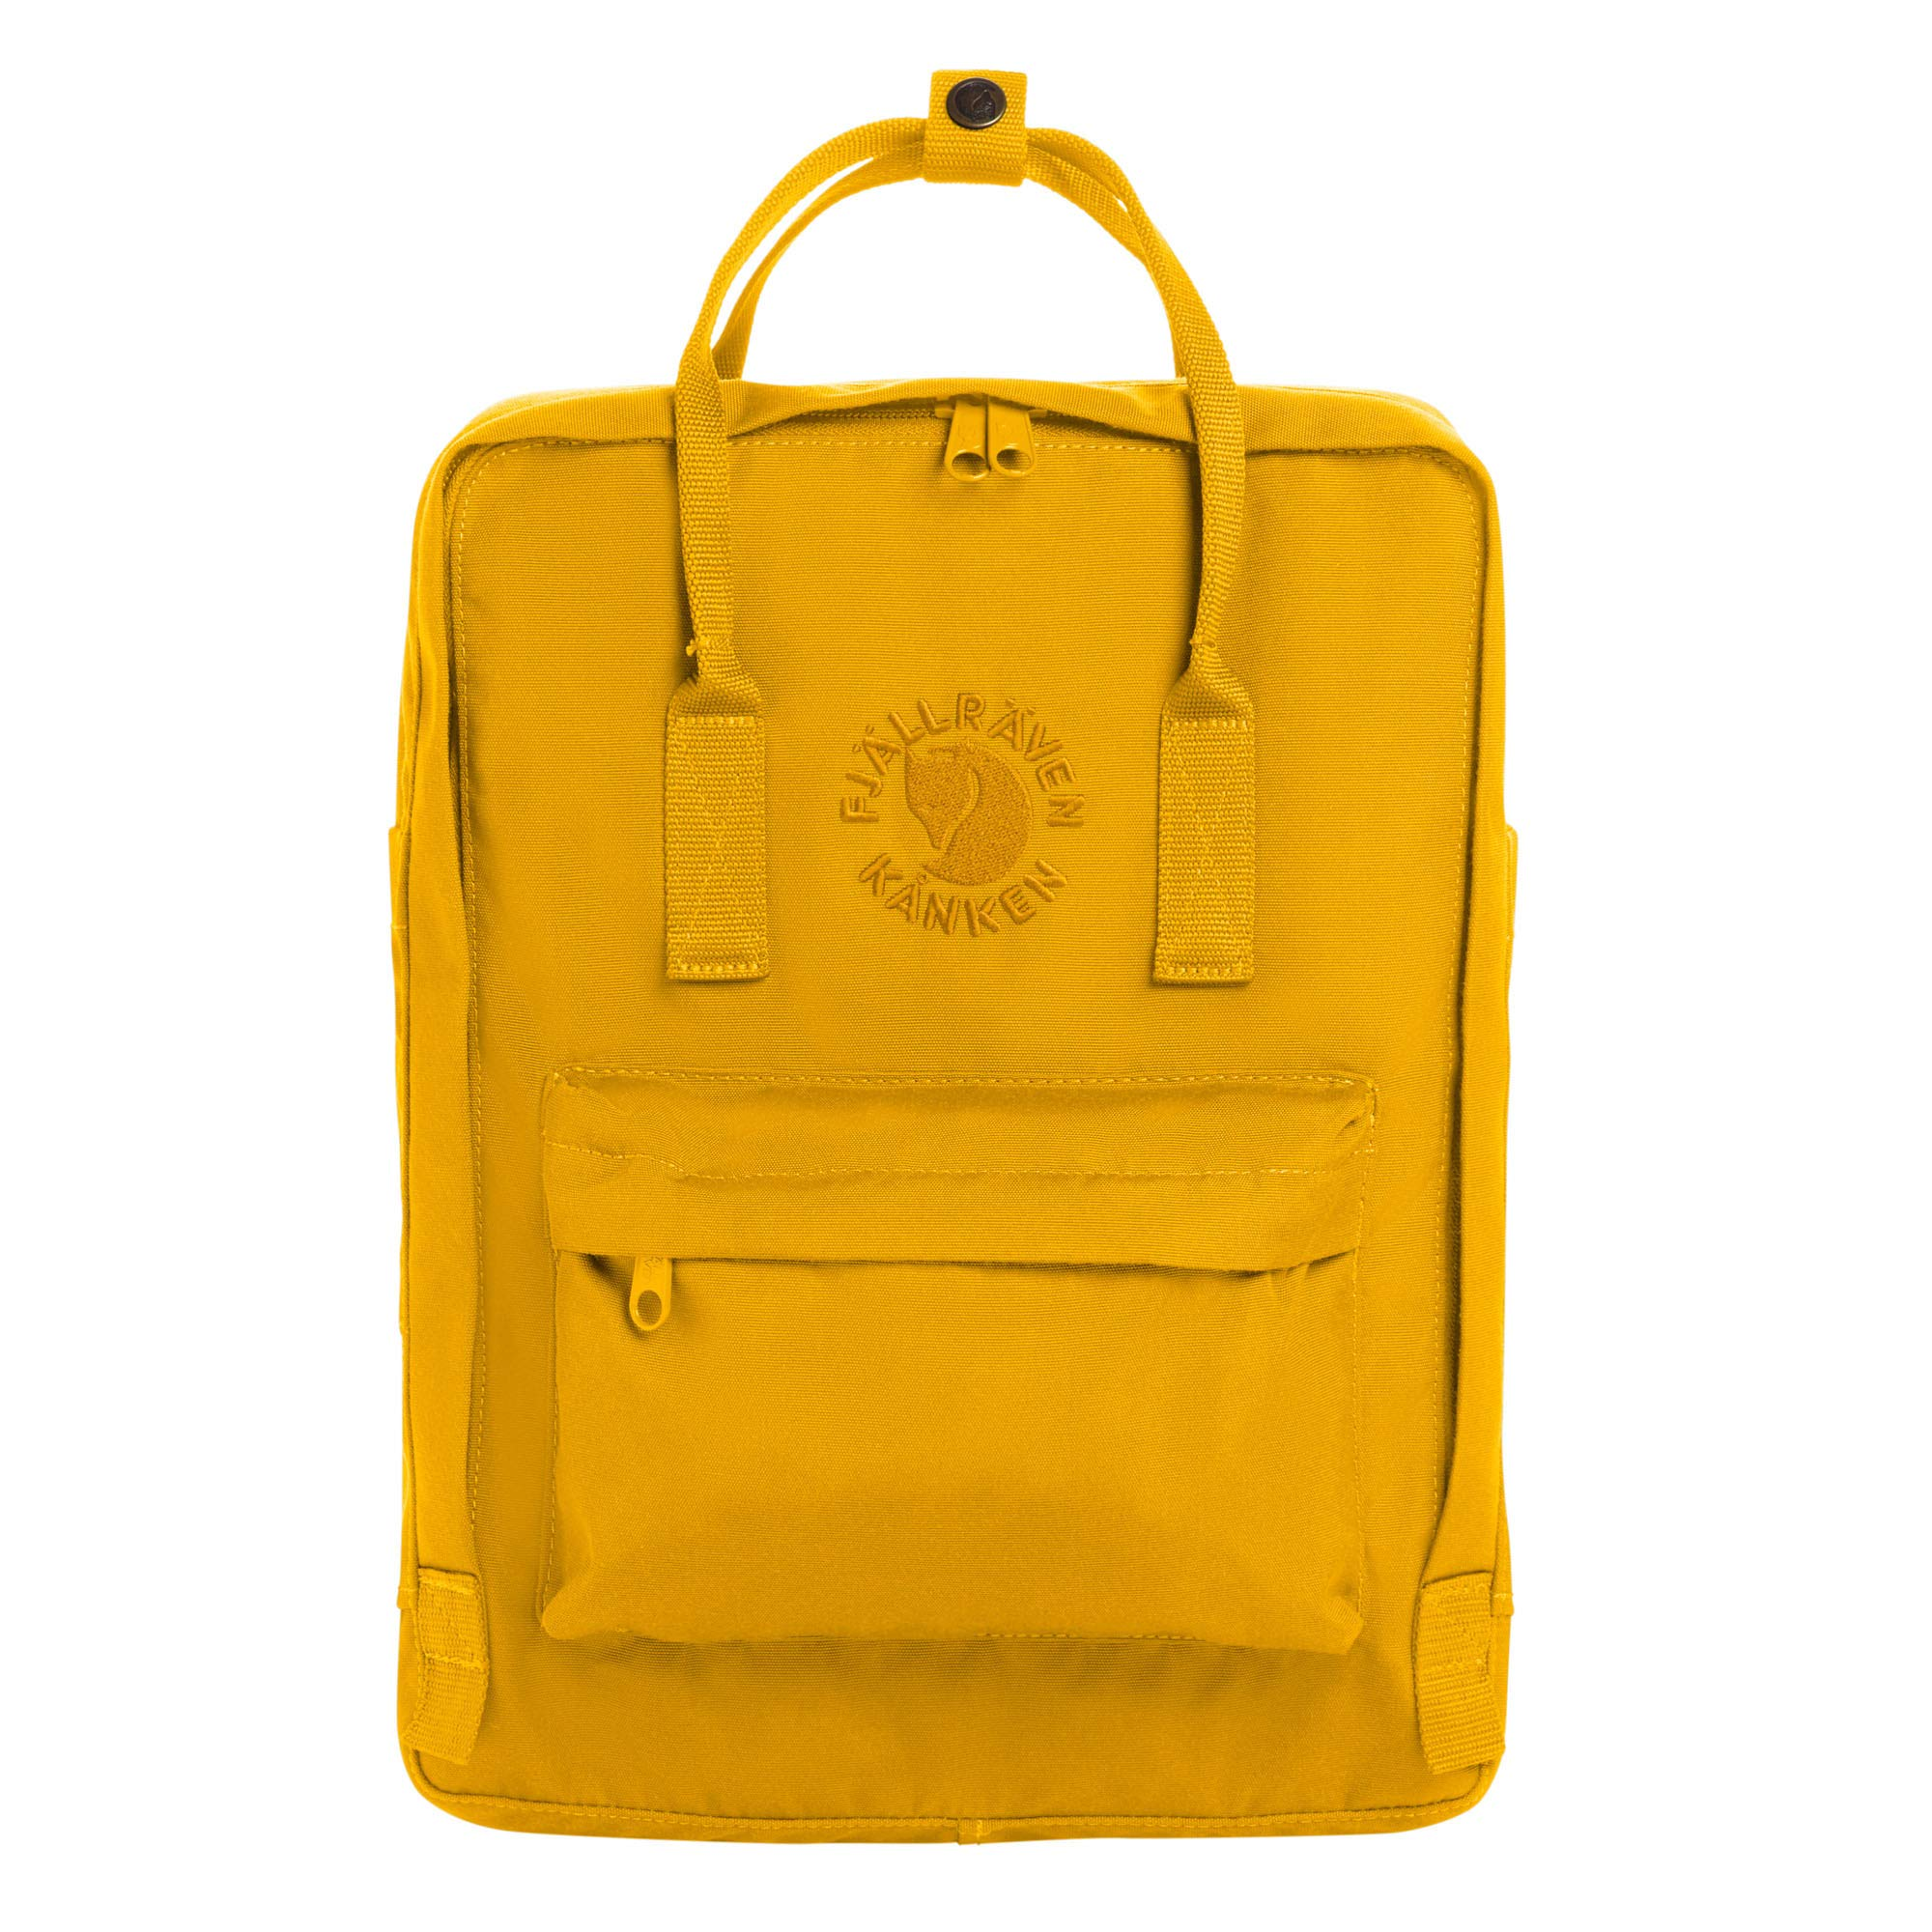 Fjallraven - Re-Kanken Recycled and Recyclable Kanken Backpack for Everyday, Sunflower Yellow by Fjallraven